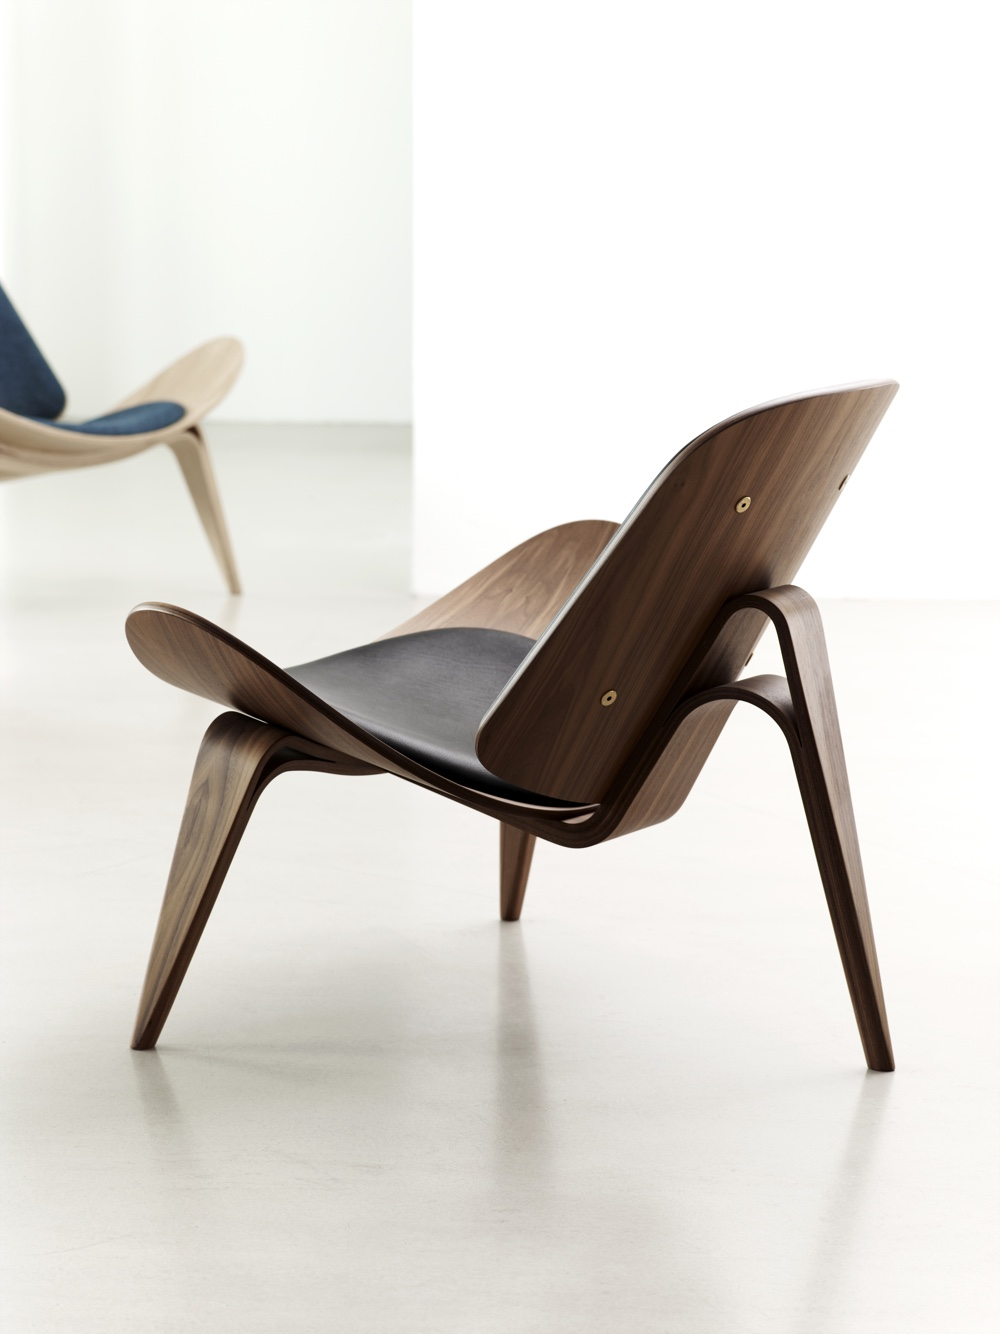 9 iconic chair designs from the 1920s 2000s for Chair design awards